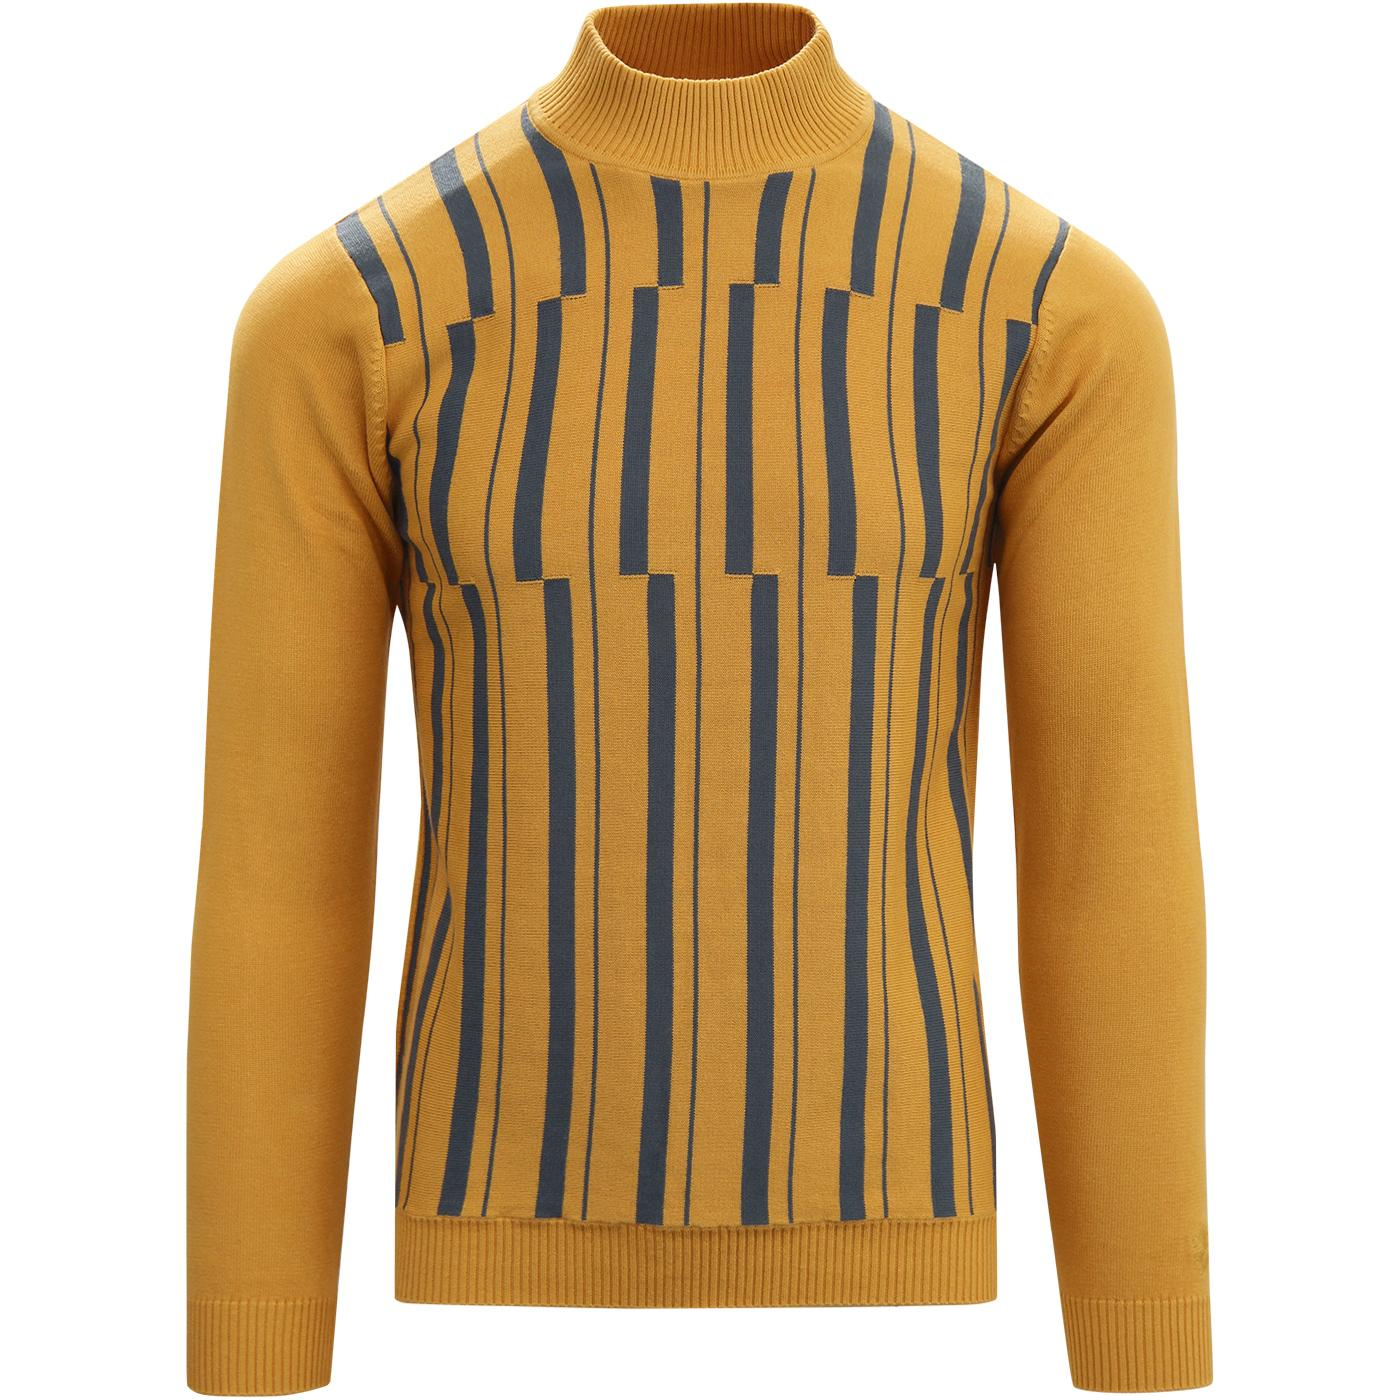 madcap england mens mod retro vertical stripes funnel neck jumper spruce yellow